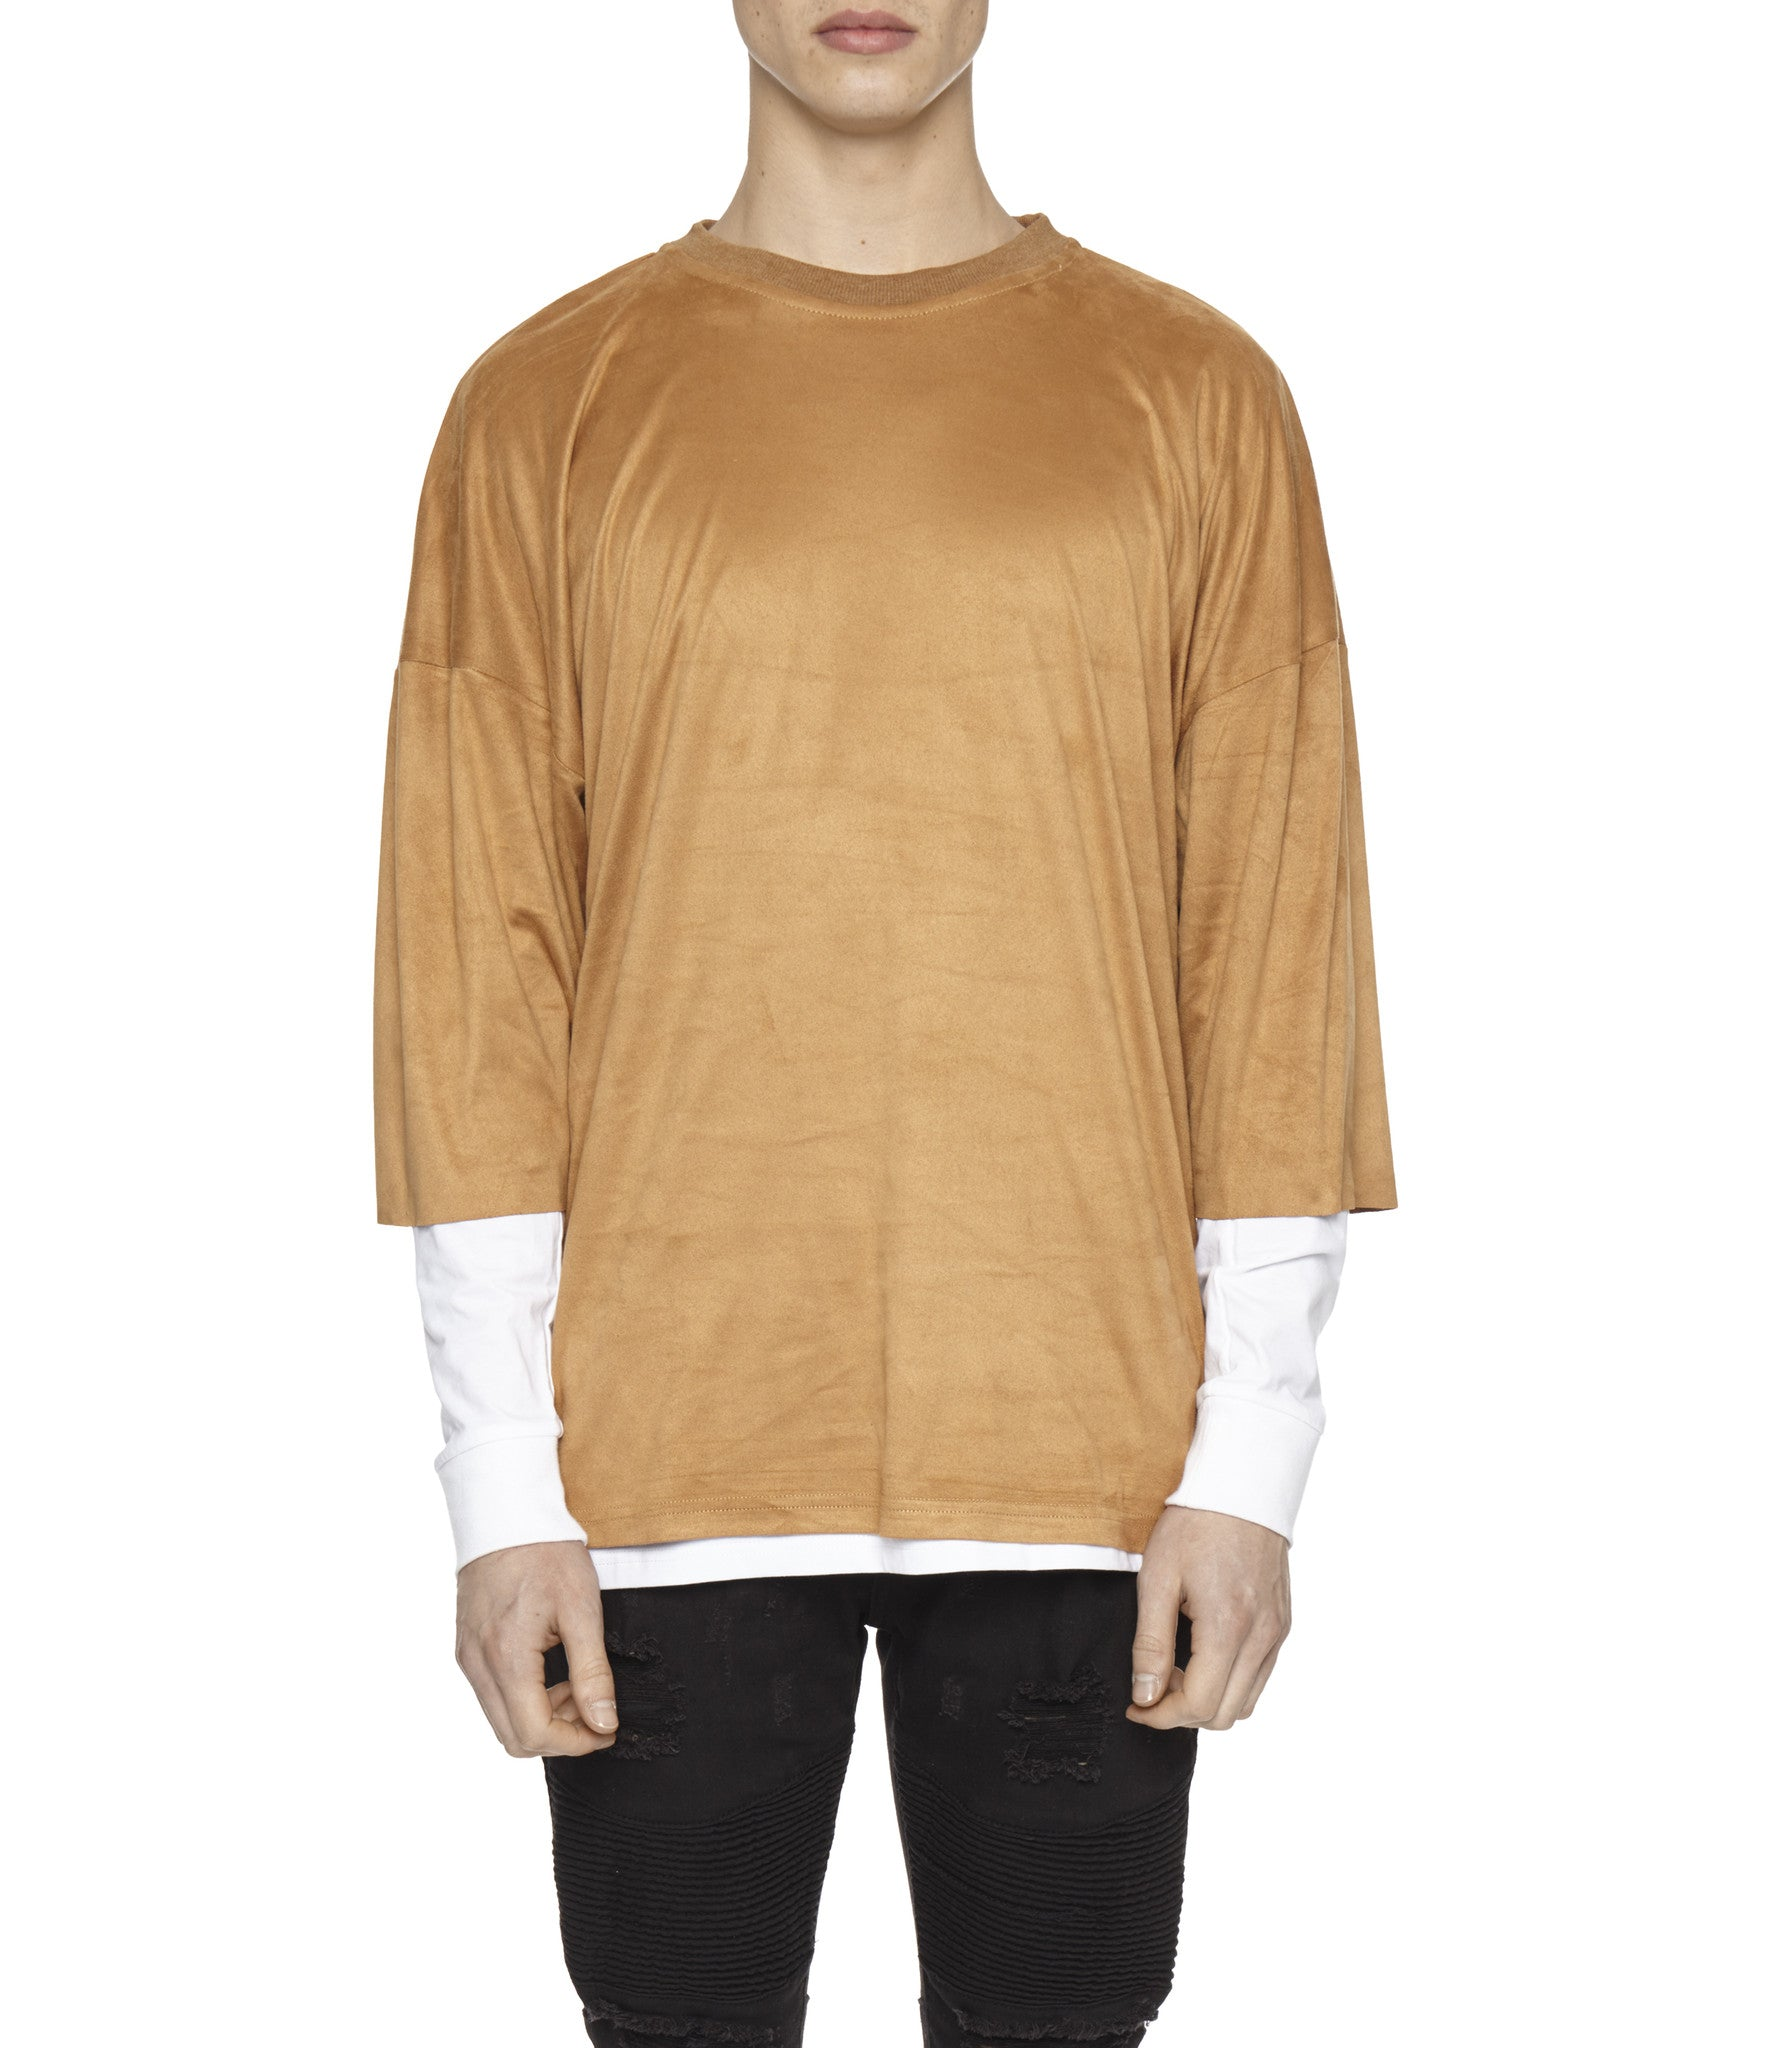 TS302 Suede Oversized Box Tee - Tan - underated london - underatedco - 3